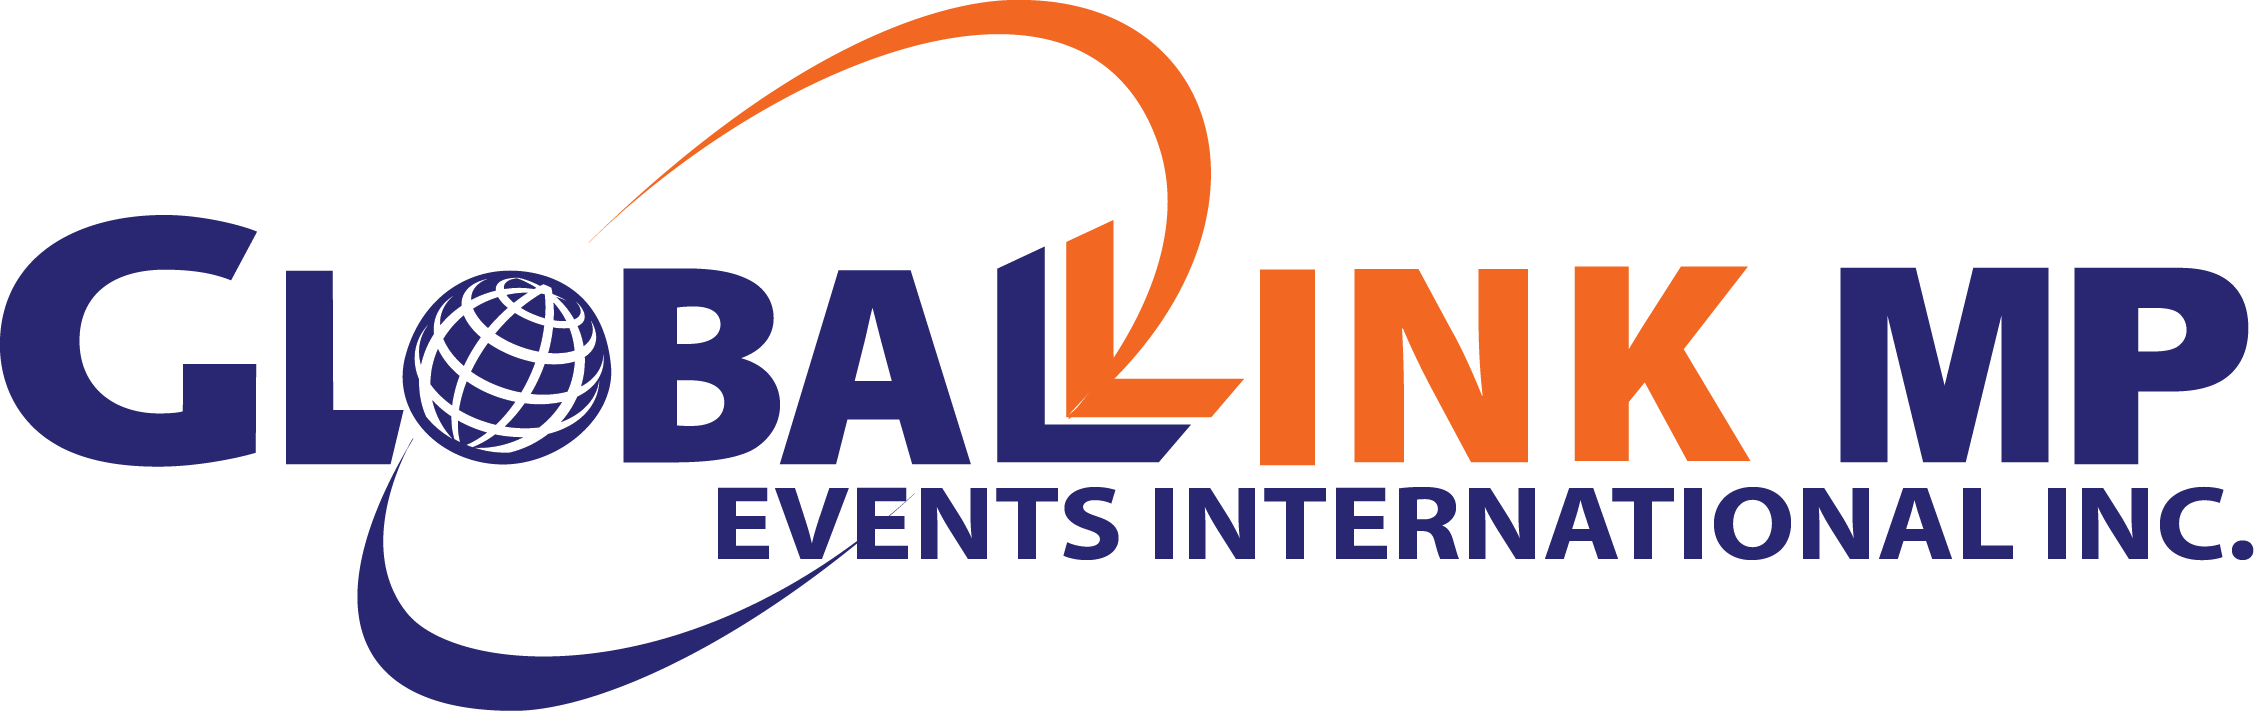 Global-Link Mp Events International, Inc.